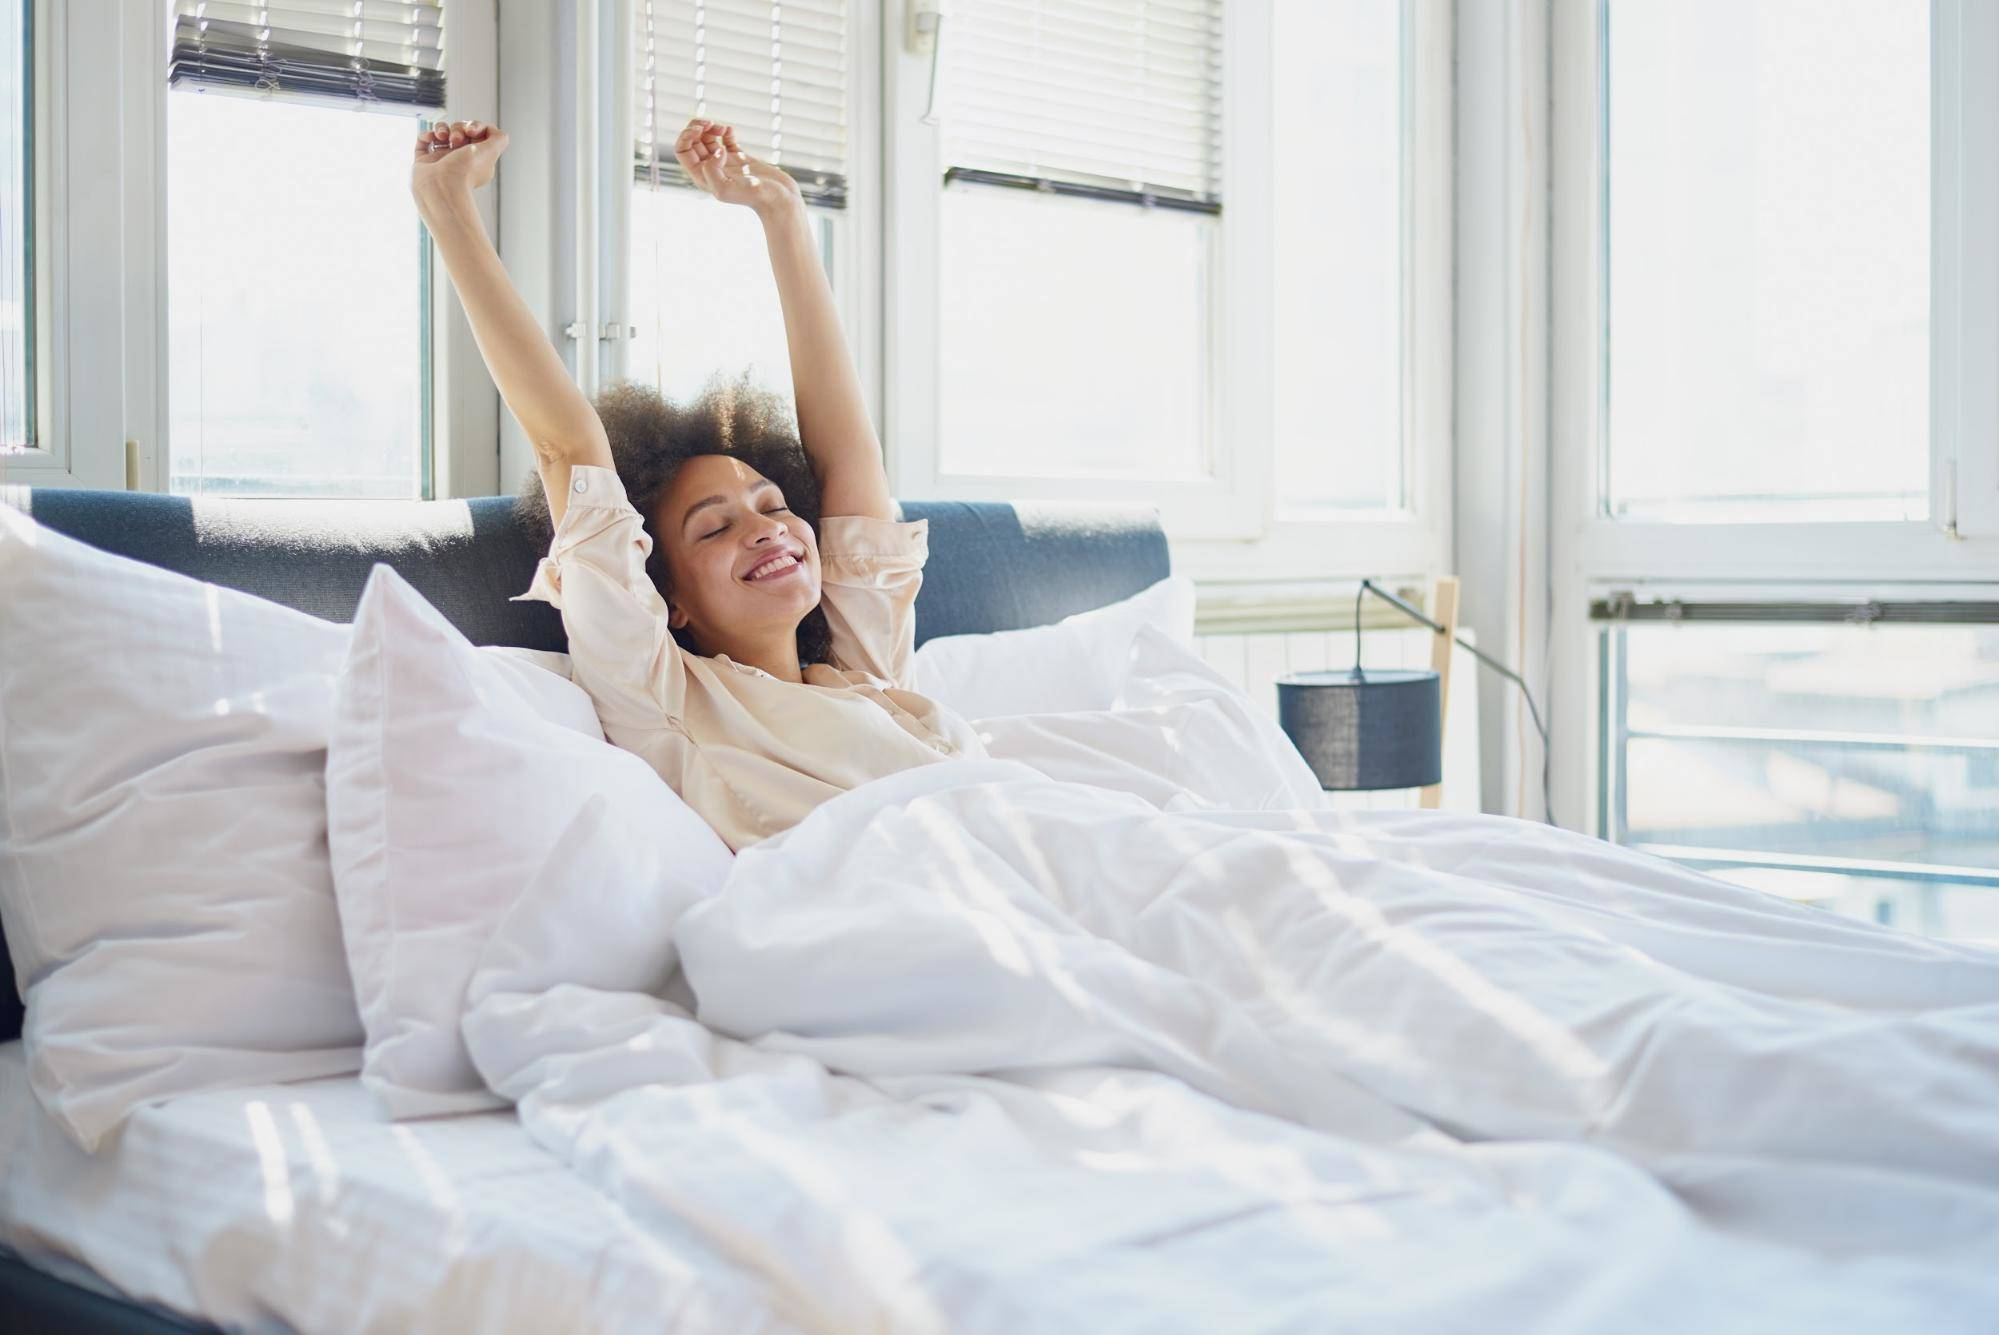 female stretching arms in bed